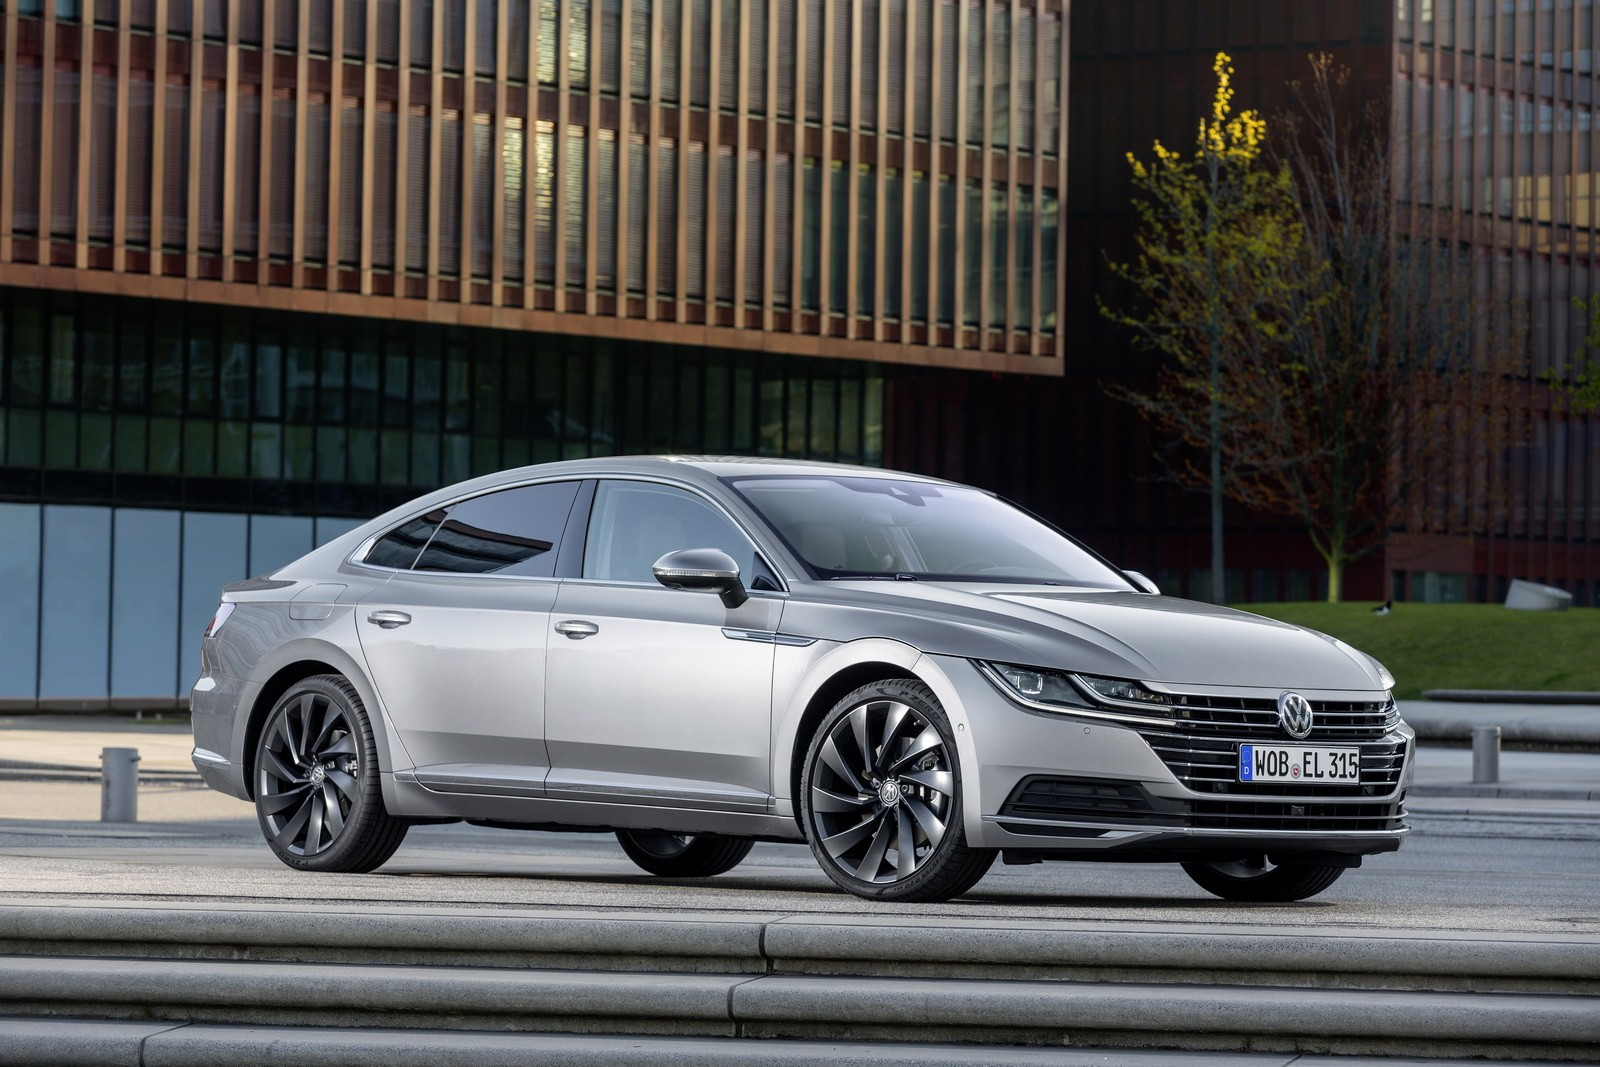 2019 Volkswagen Arteon To Debut At Chicago Auto Show